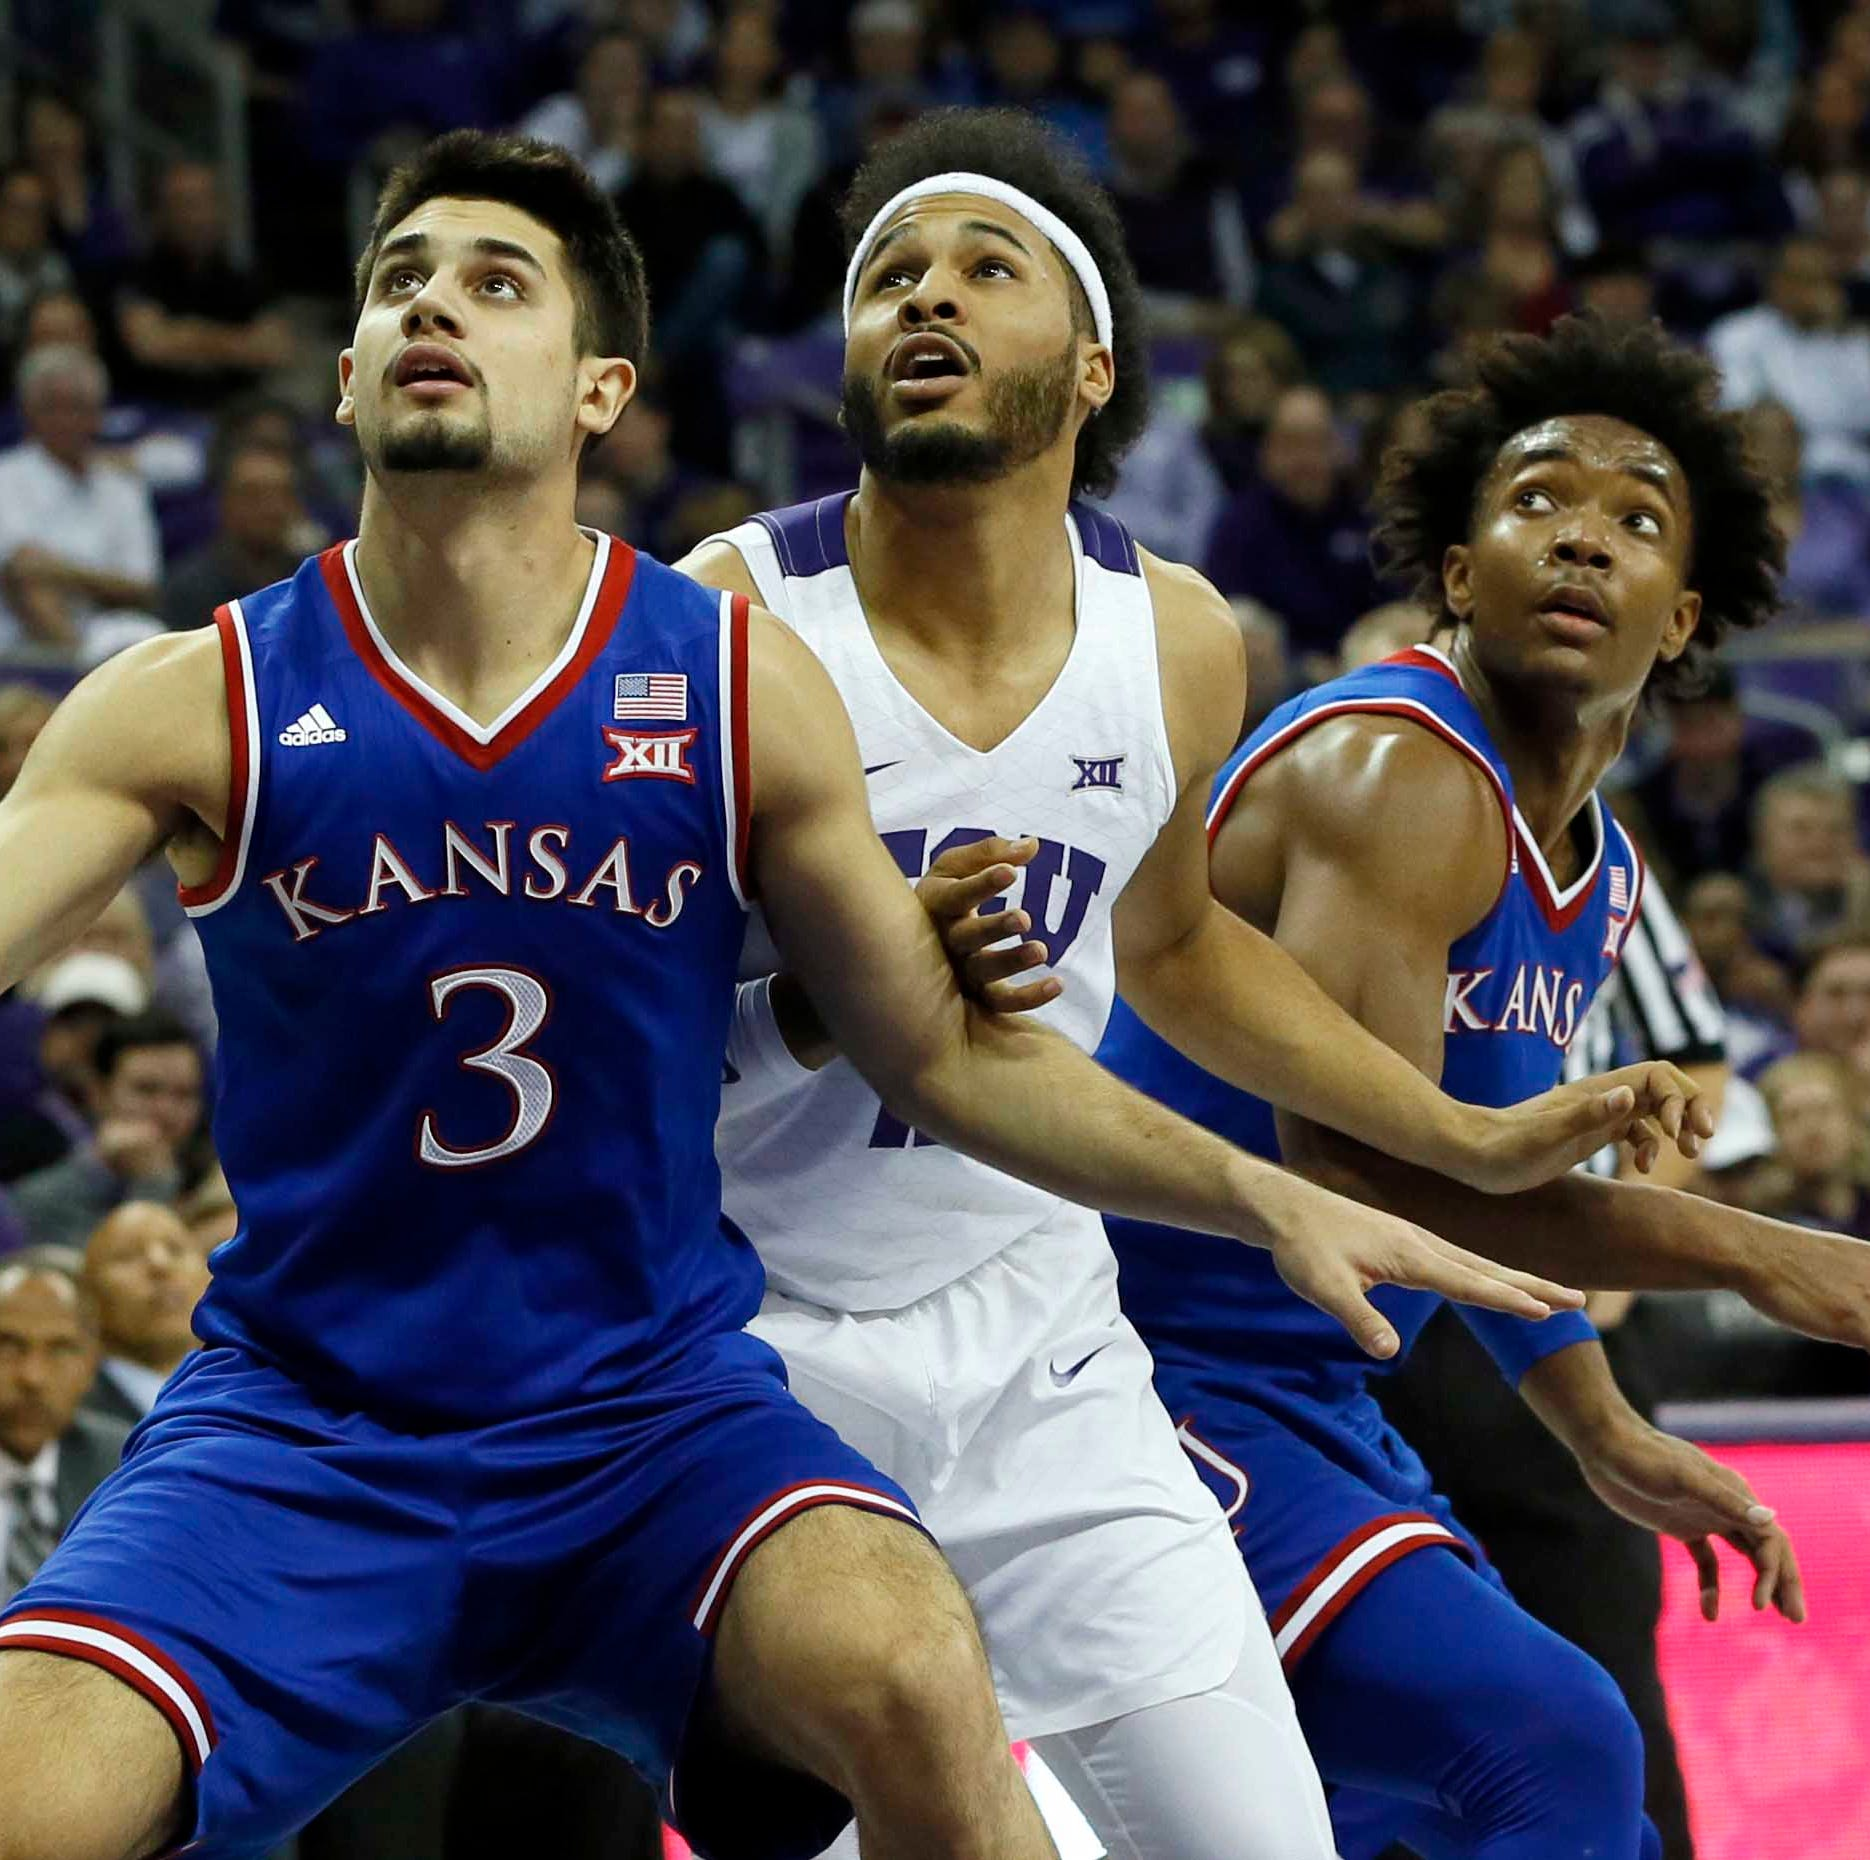 Jan 6, 2018; Fort Worth, TX, USA; Kansas Jayhawks guard Sam Cunliffe (3) and guard Devonte' Graham (4) fight for position against TCU Horned Frogs guard Shawn Olden (2) in the first half at Ed and Rae Schollmaier Arena.